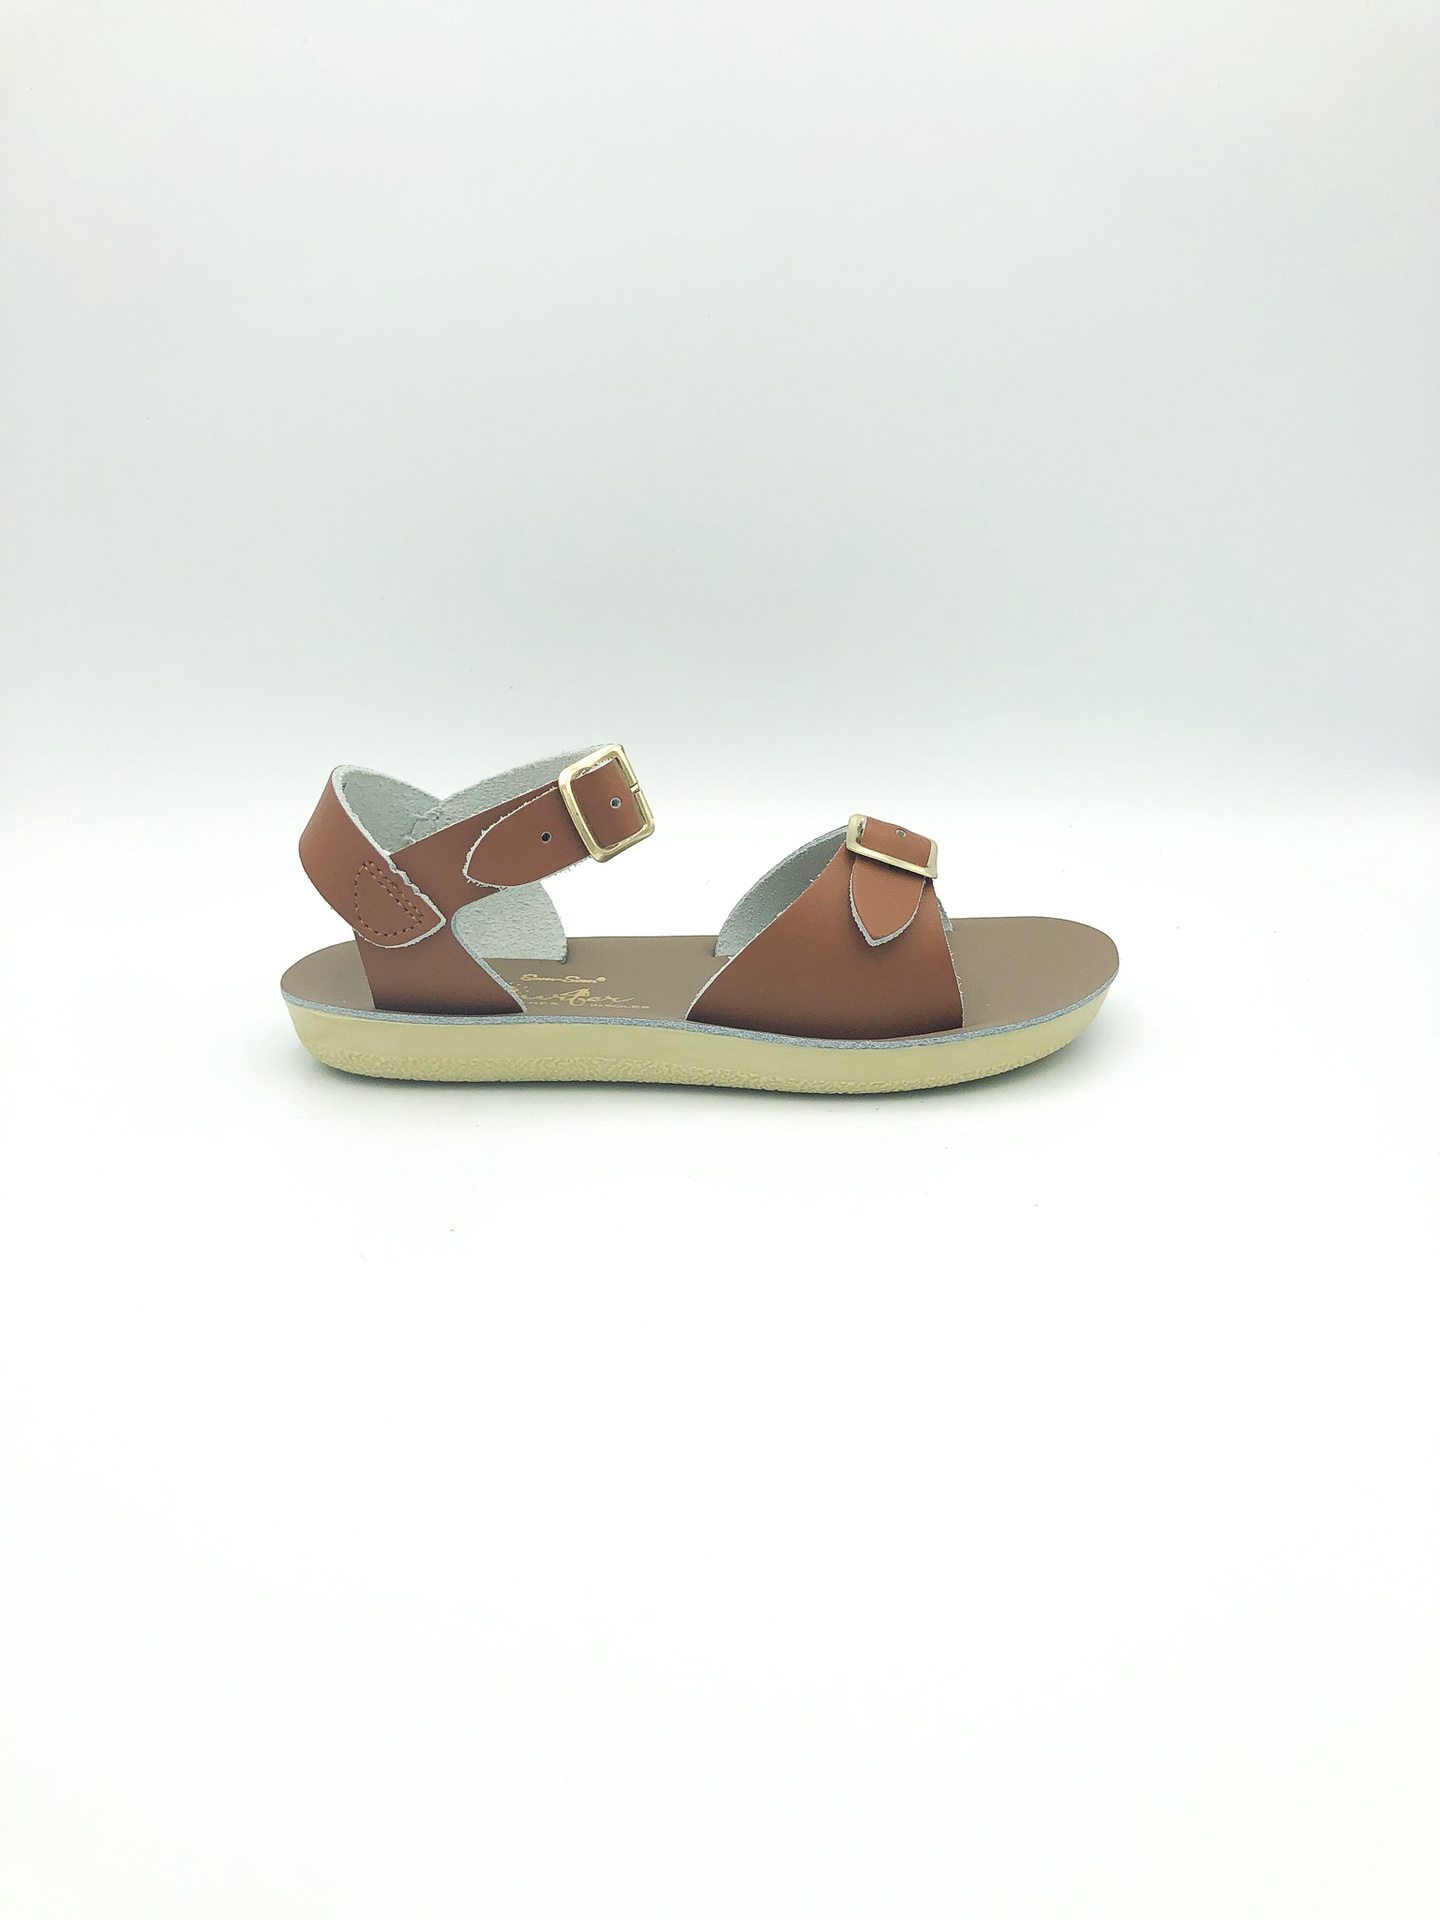 SALT WATER SANDALS - SURFER IN TAN (YOUTH 13-3)